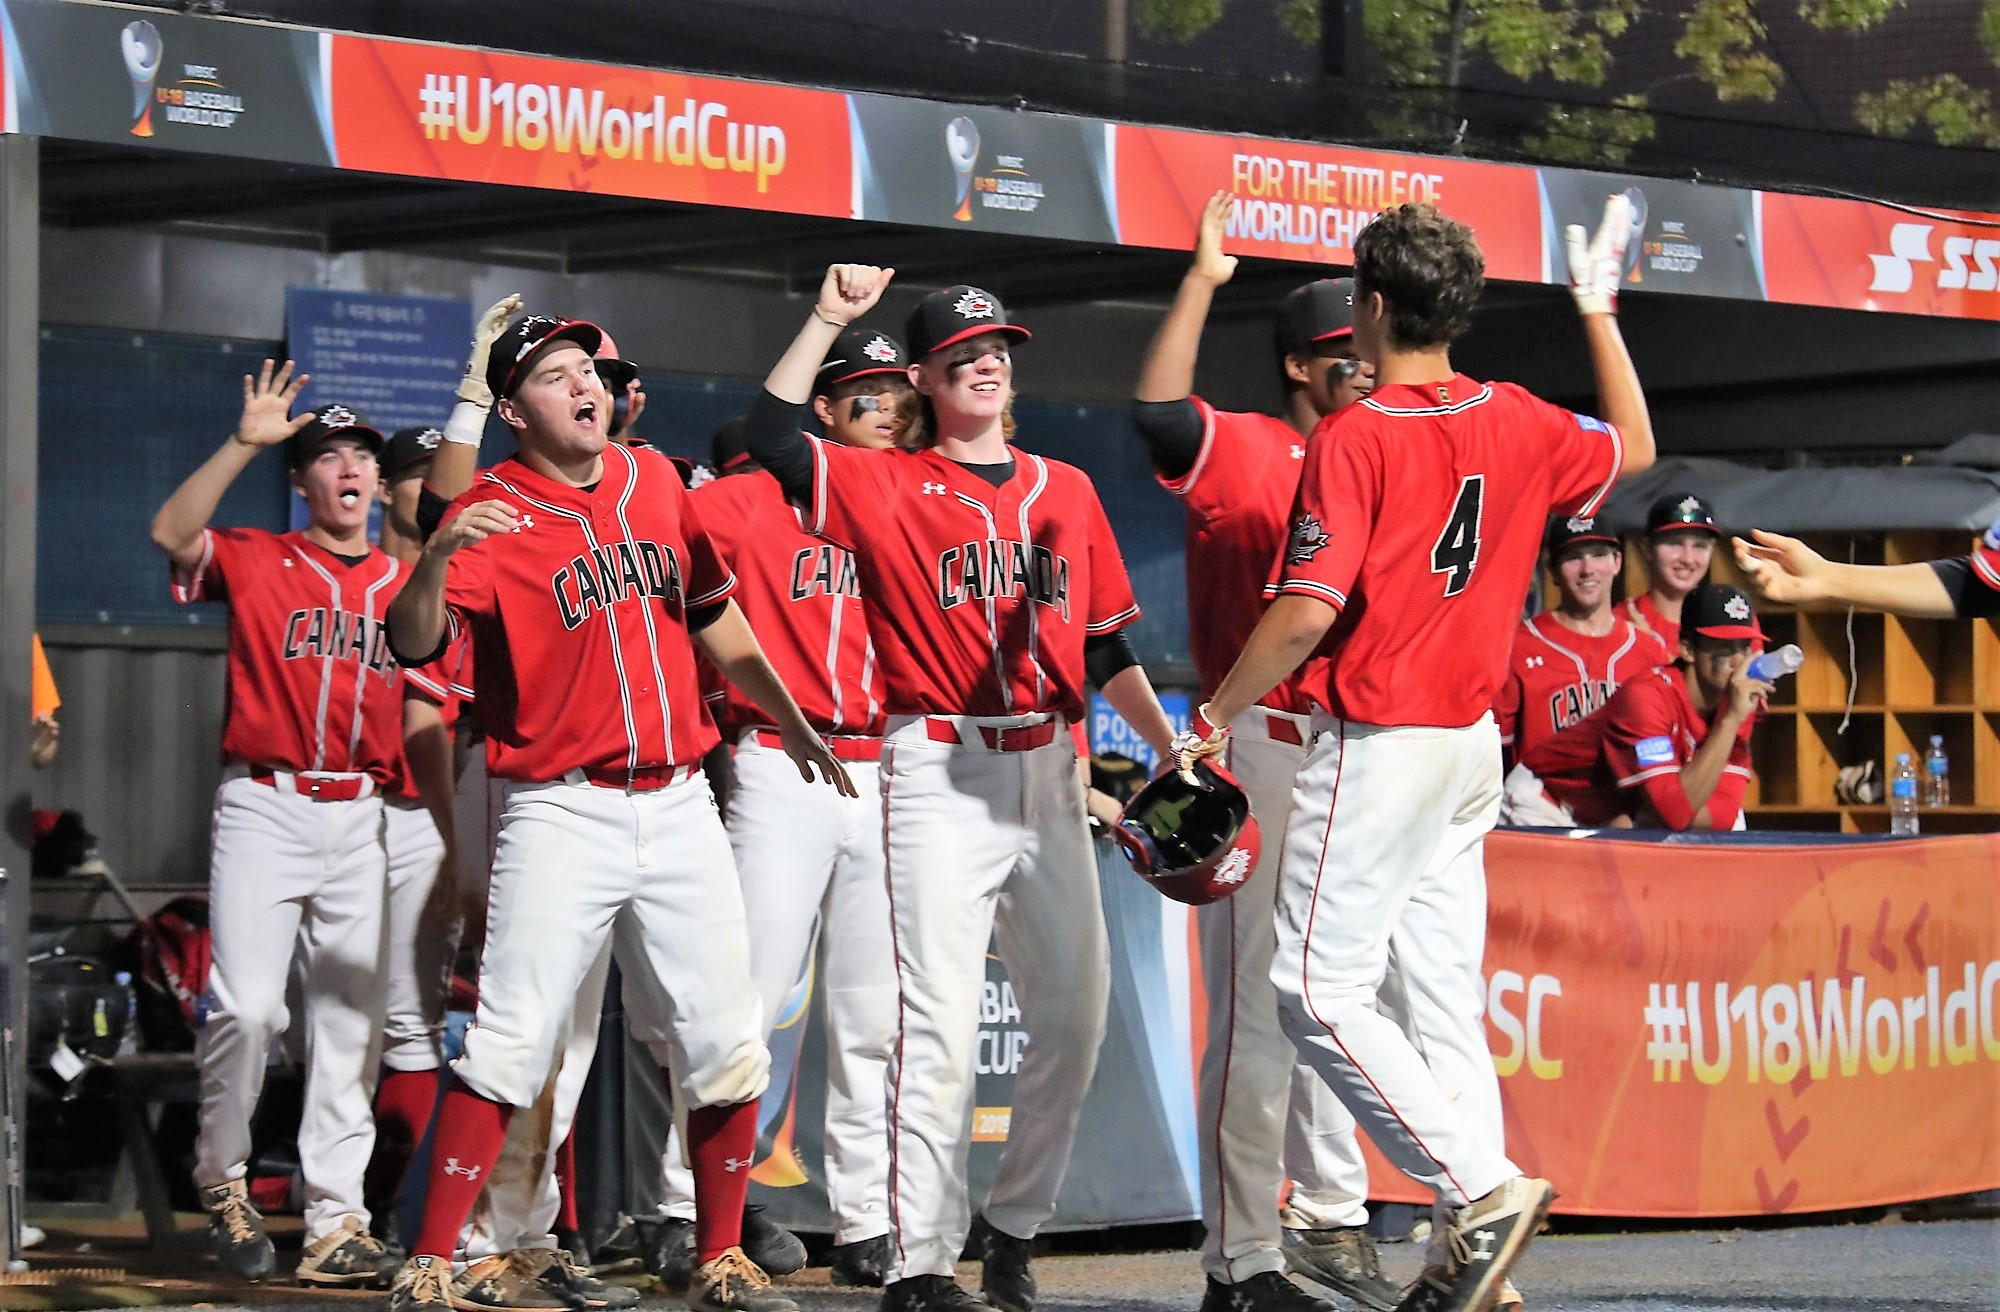 U-18 Baseball World Cup: Canada finishes with a win over Chinese Taipei